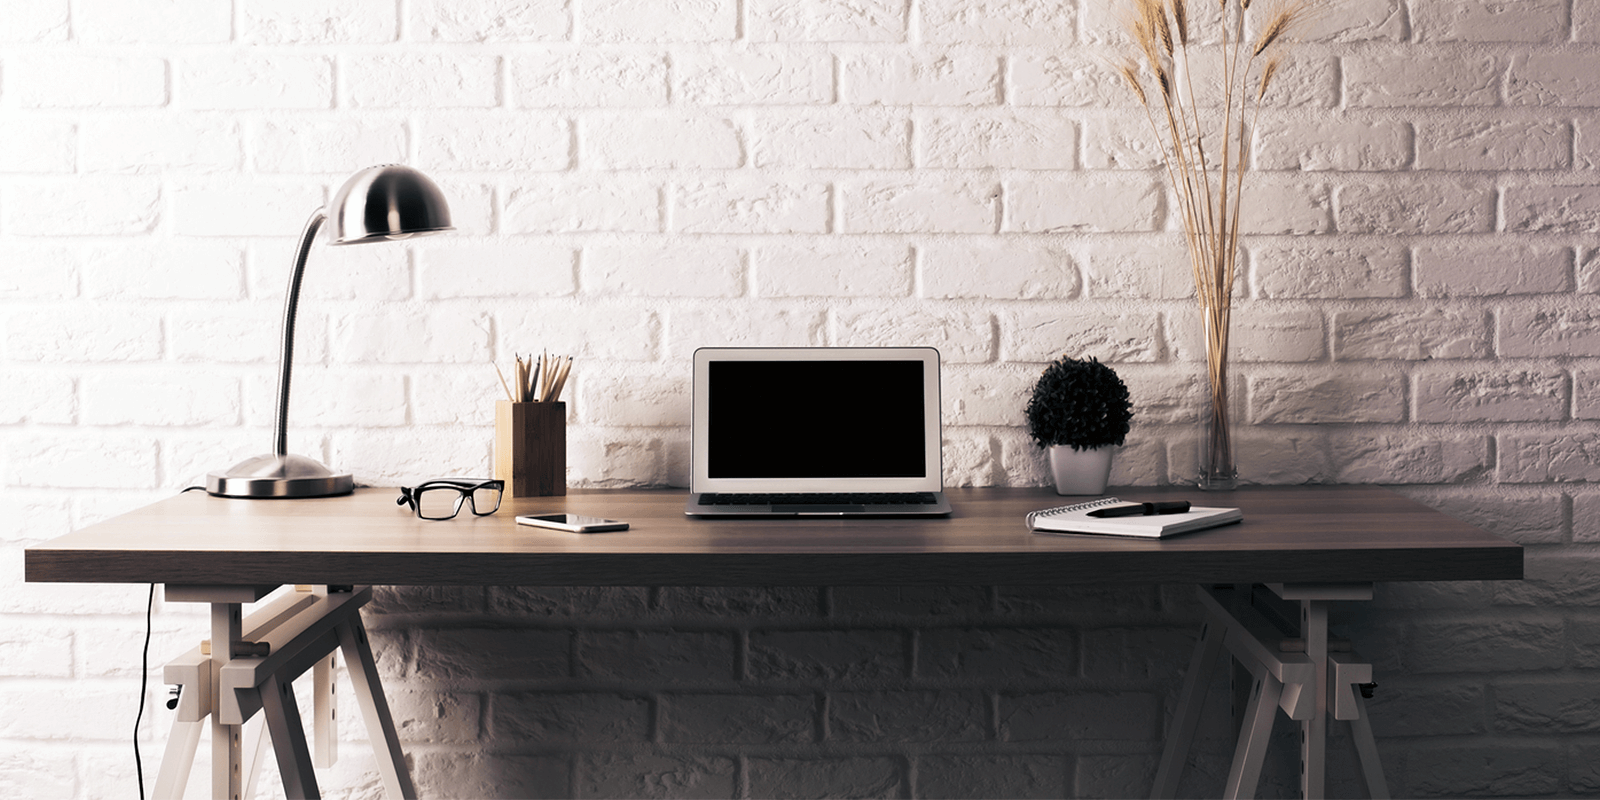 40 Home Office Workspace Tips to Get Organized  FlexJobs